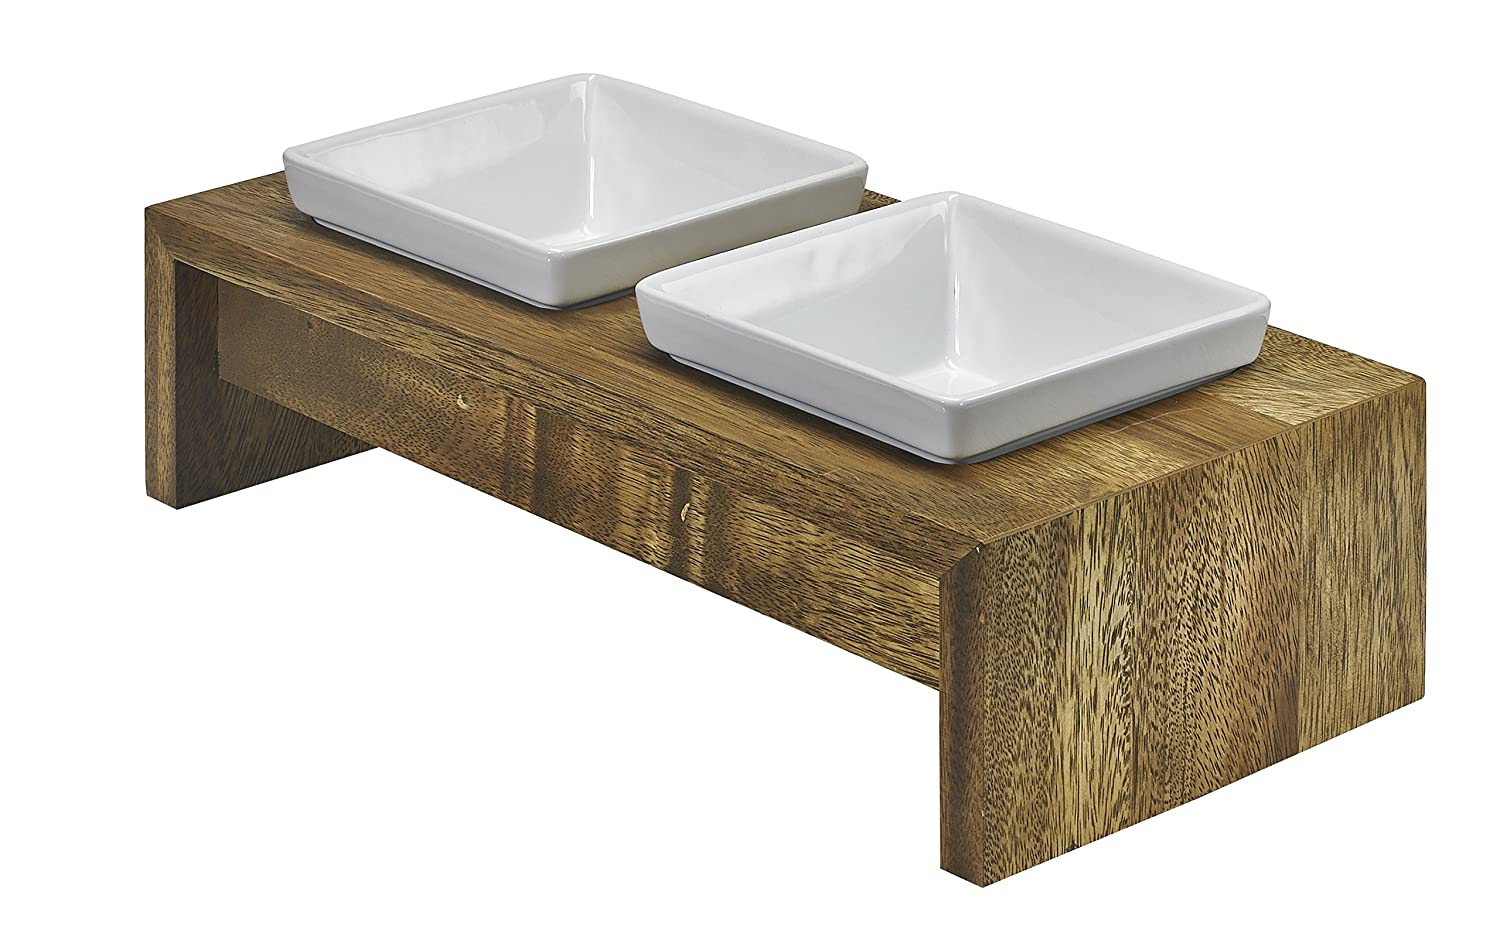 (Small, Bamboo) Bowsers Artisan Diner Double Dog Feeder